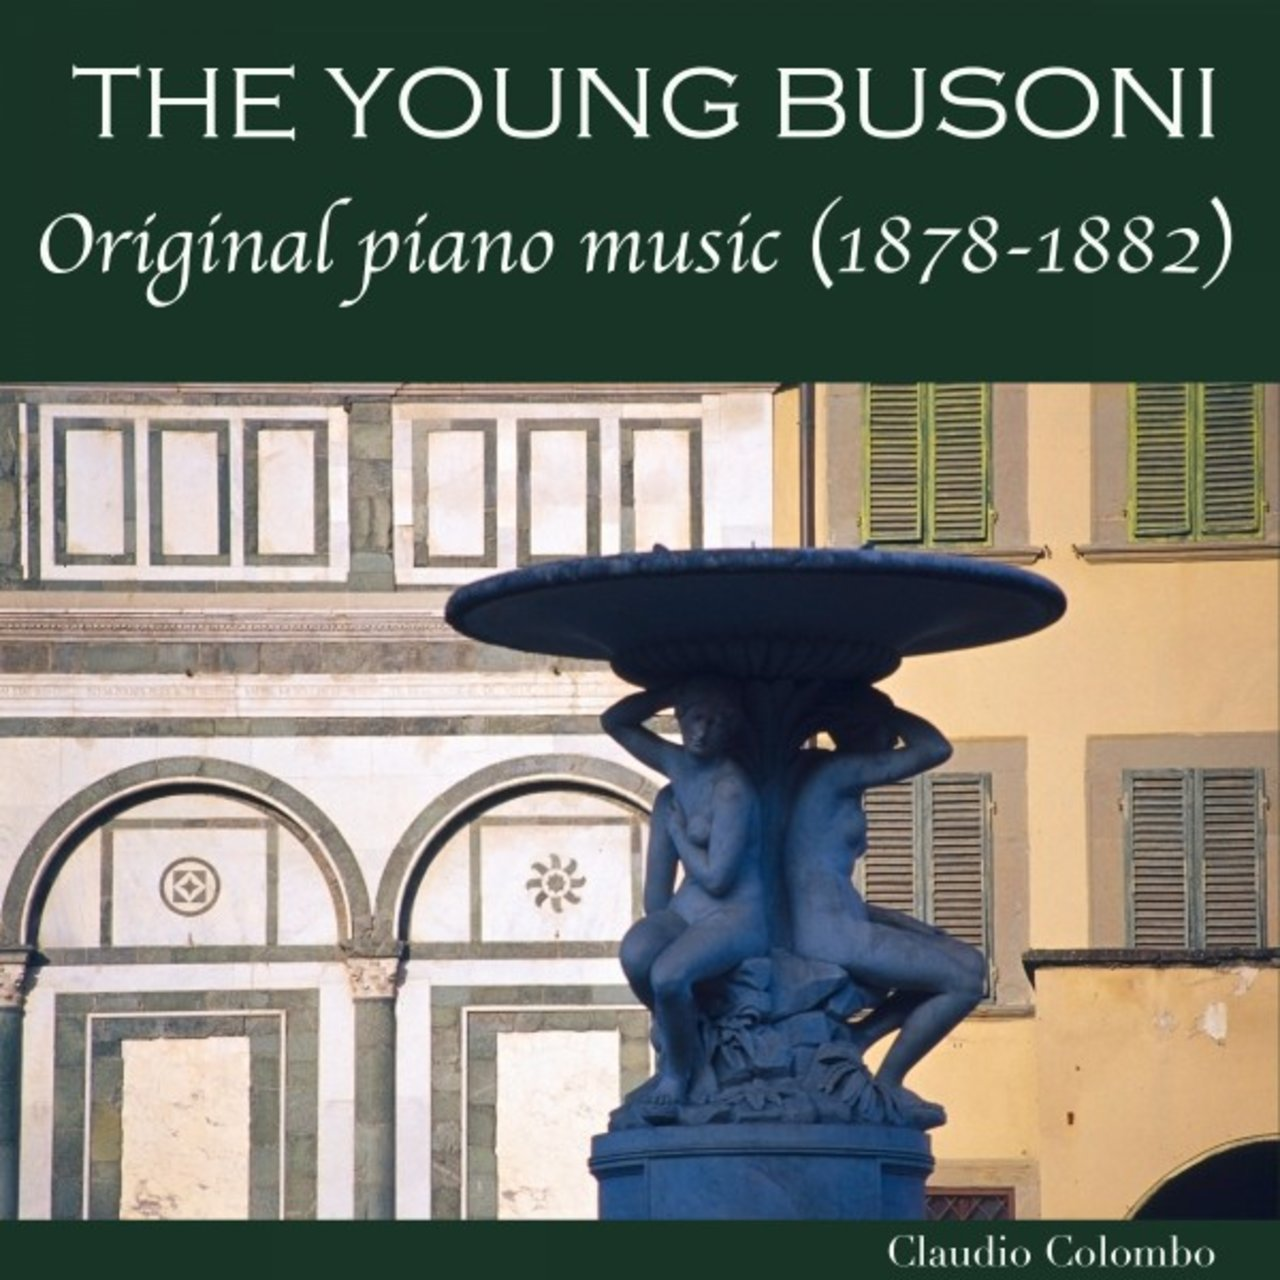 The Young Busoni: Original Piano Music (1878-1882)